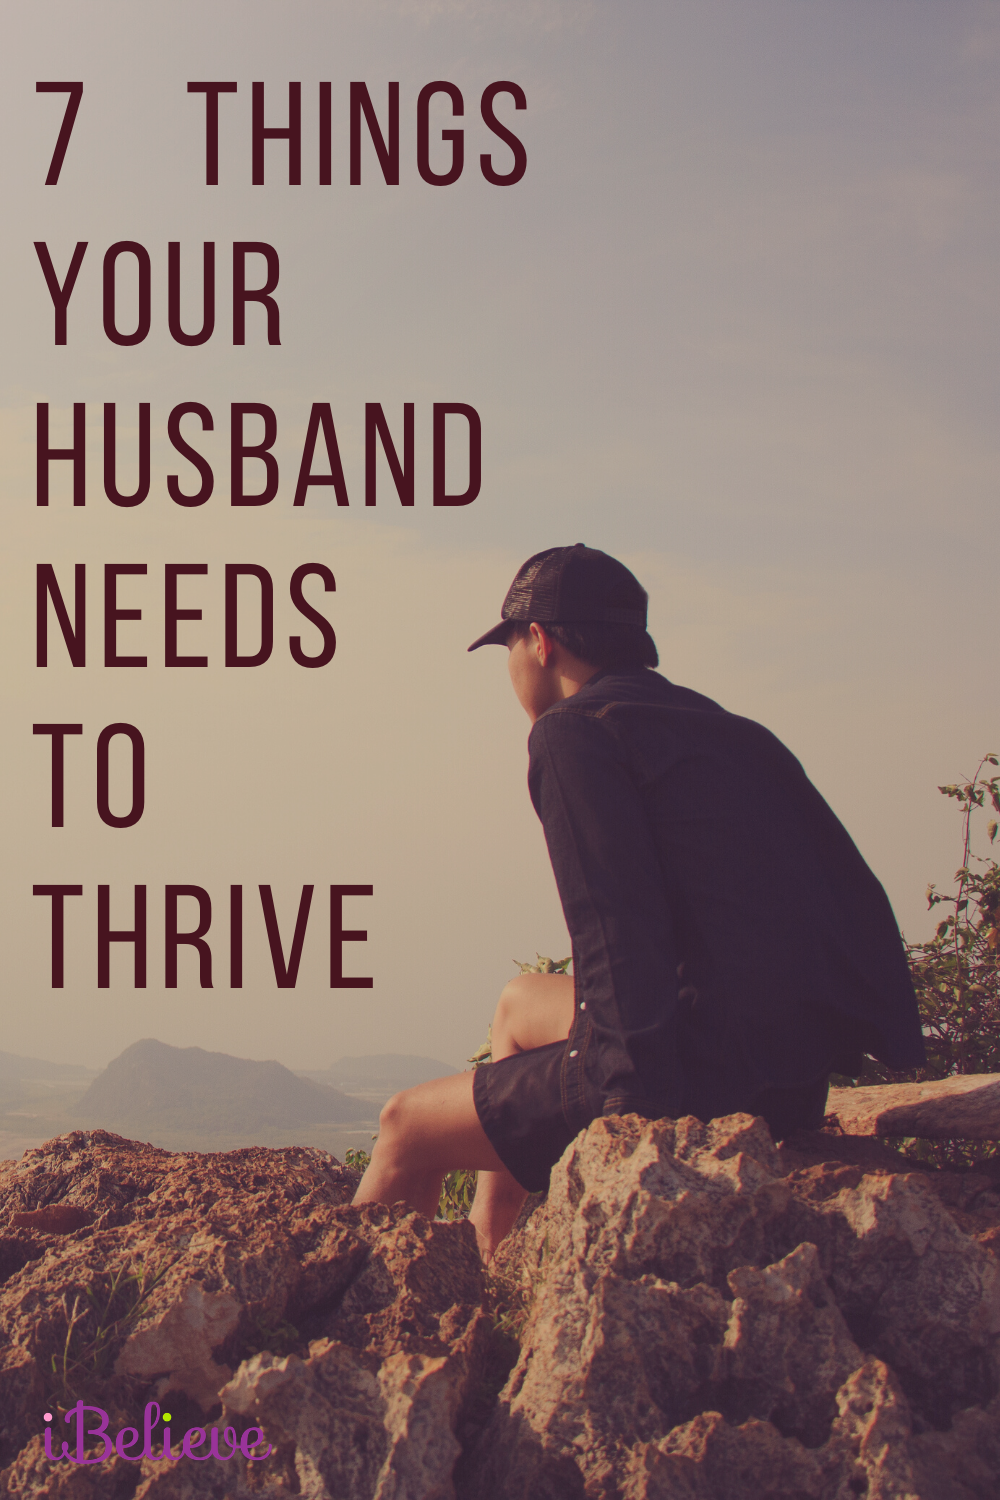 7 Things Your Husband Needs to Thrive